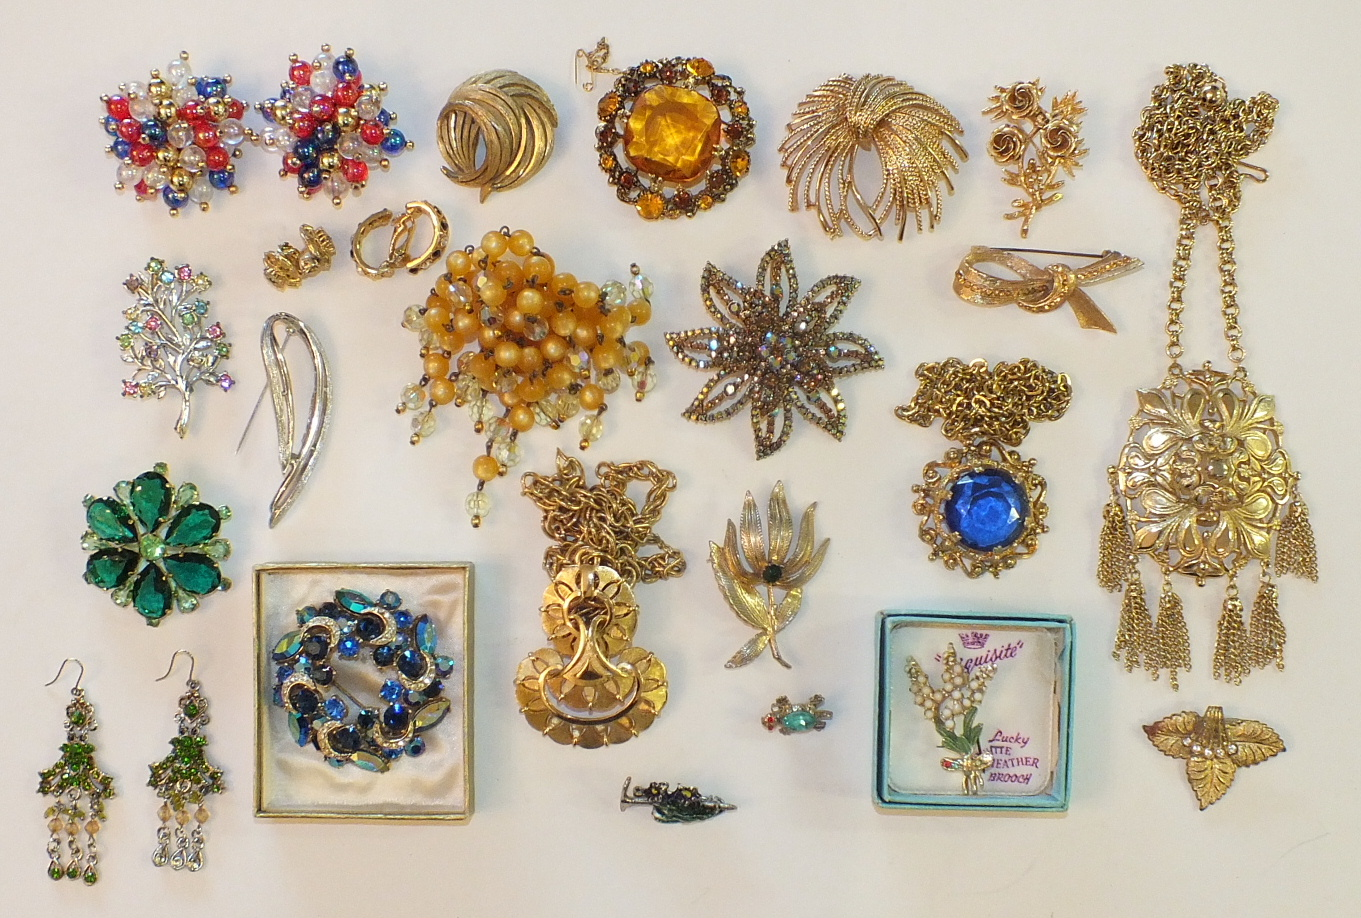 Lot 180 - A quantity of costume jewellery, including items by Trifari, Monet, Sara Coventry, etc.